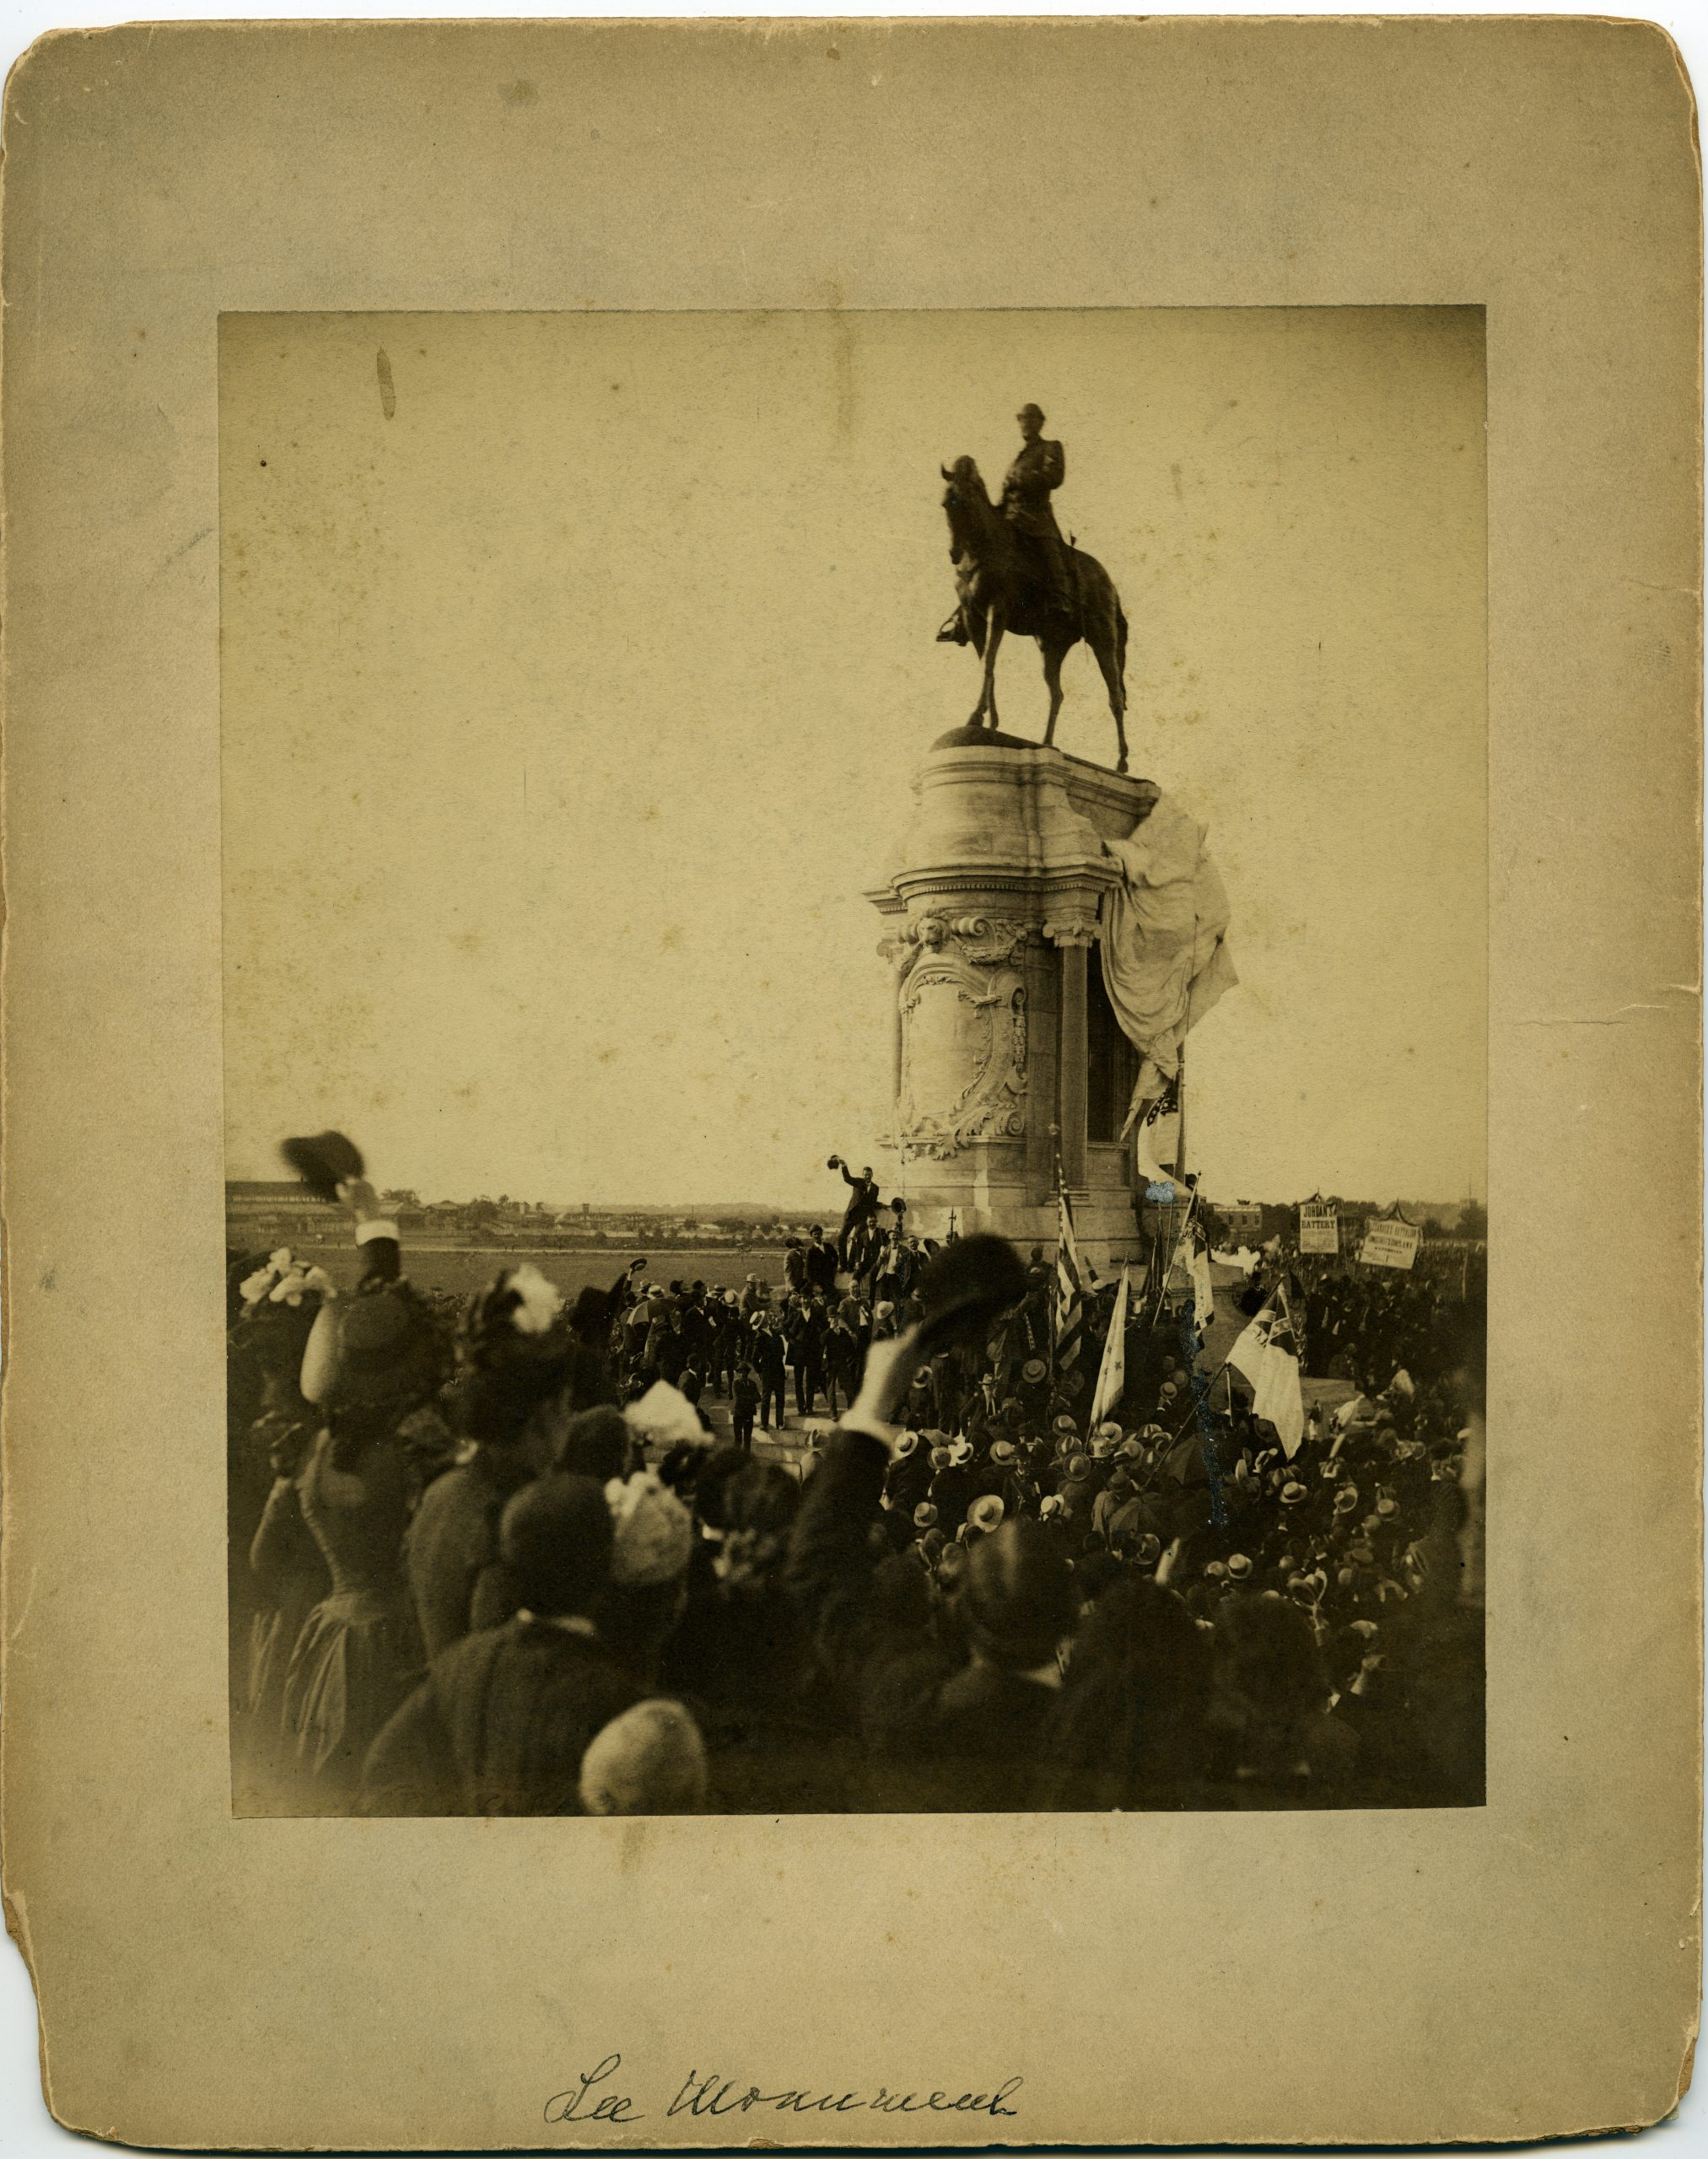 Unveiling of Lee Monument